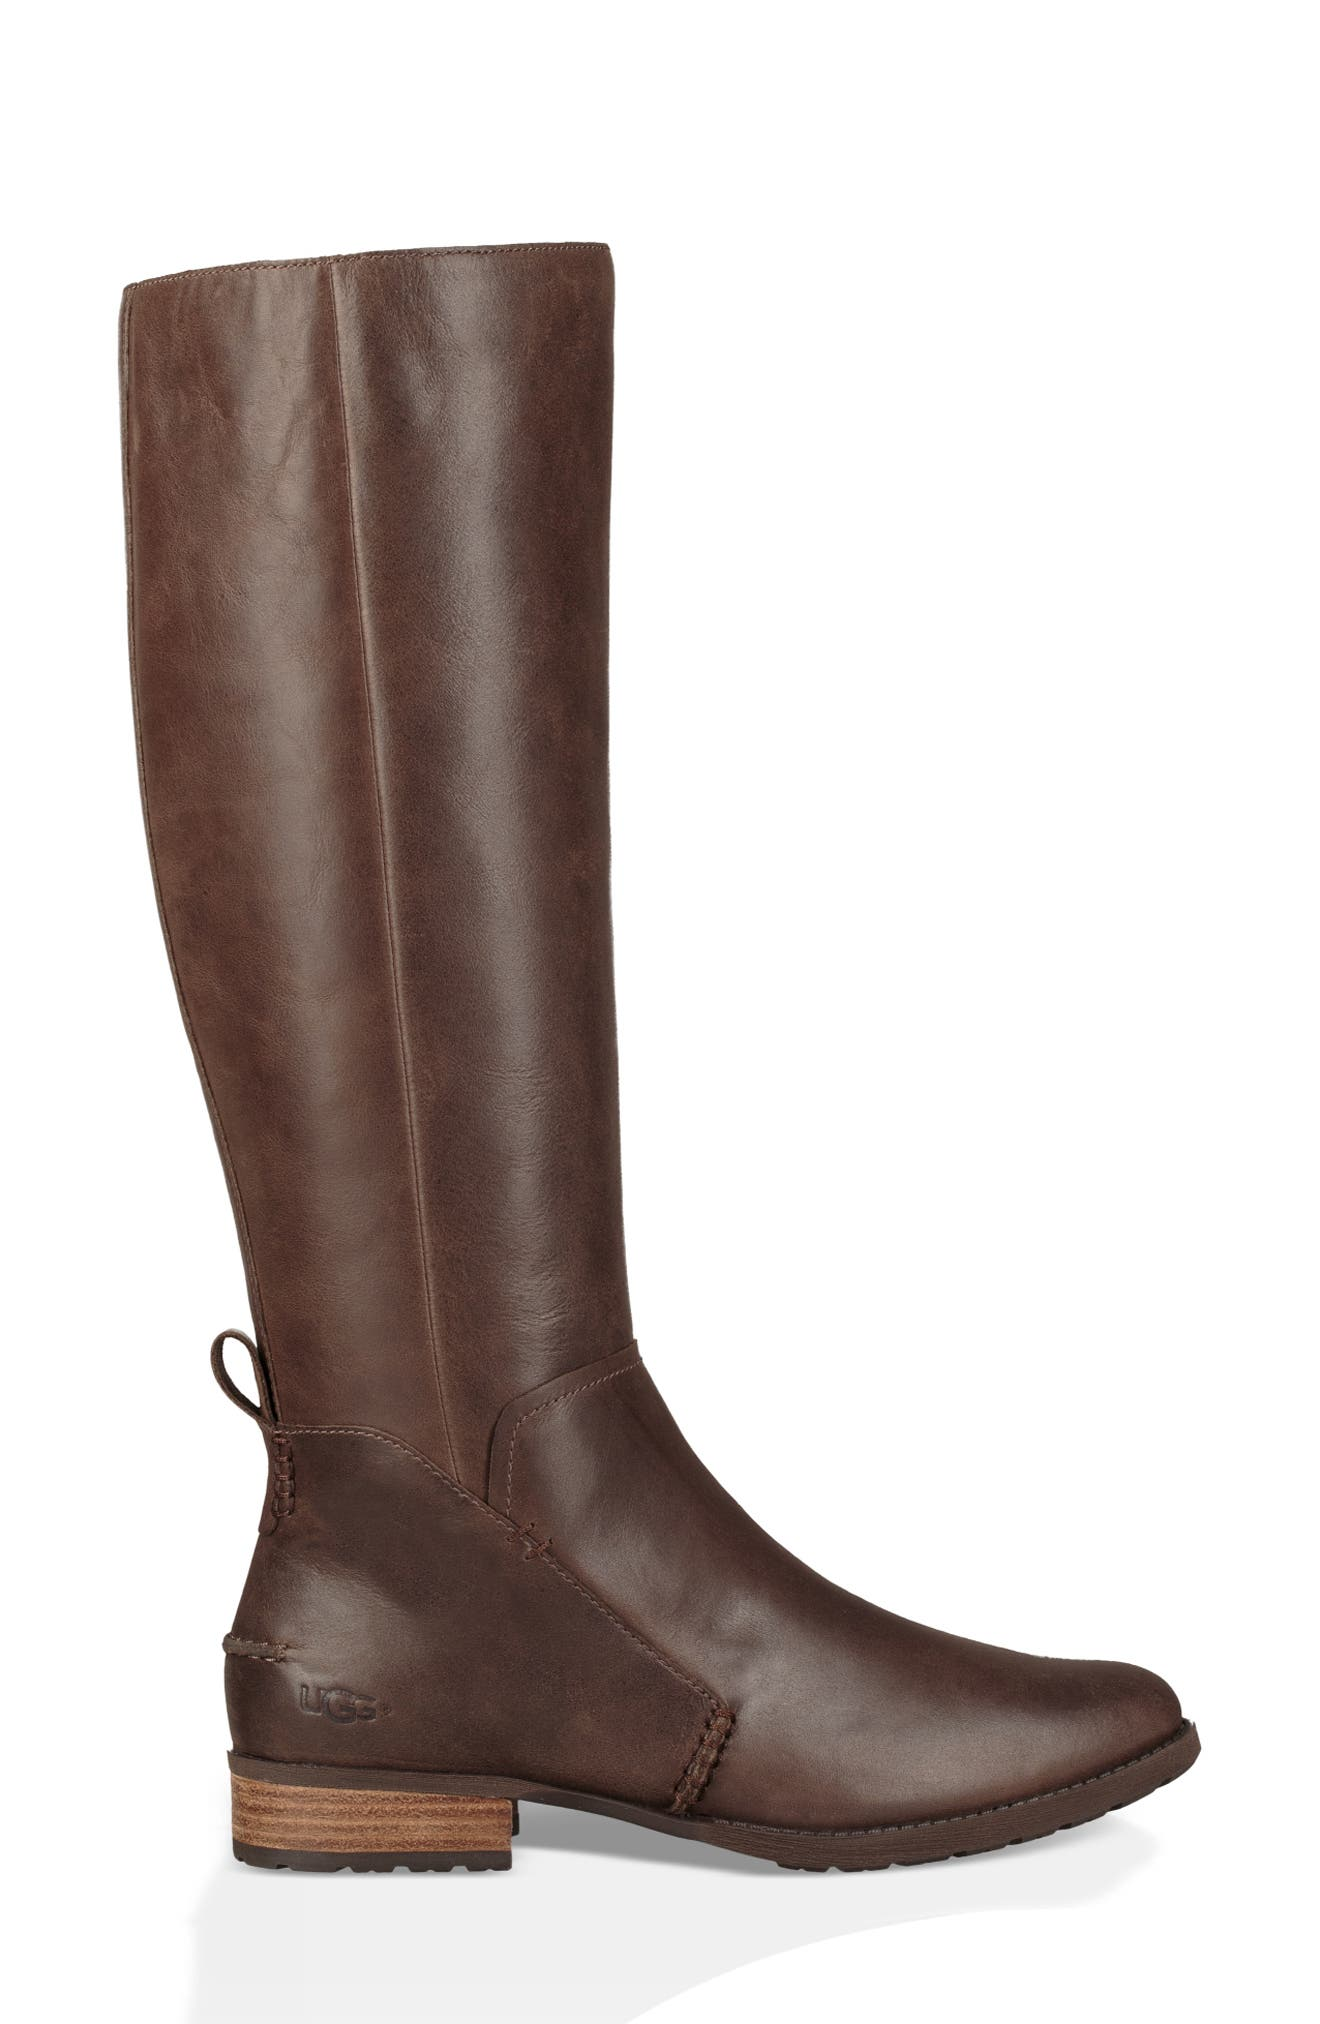 Leigh Knee High Riding Boot,                             Alternate thumbnail 3, color,                             DARK BROWN LEATHER